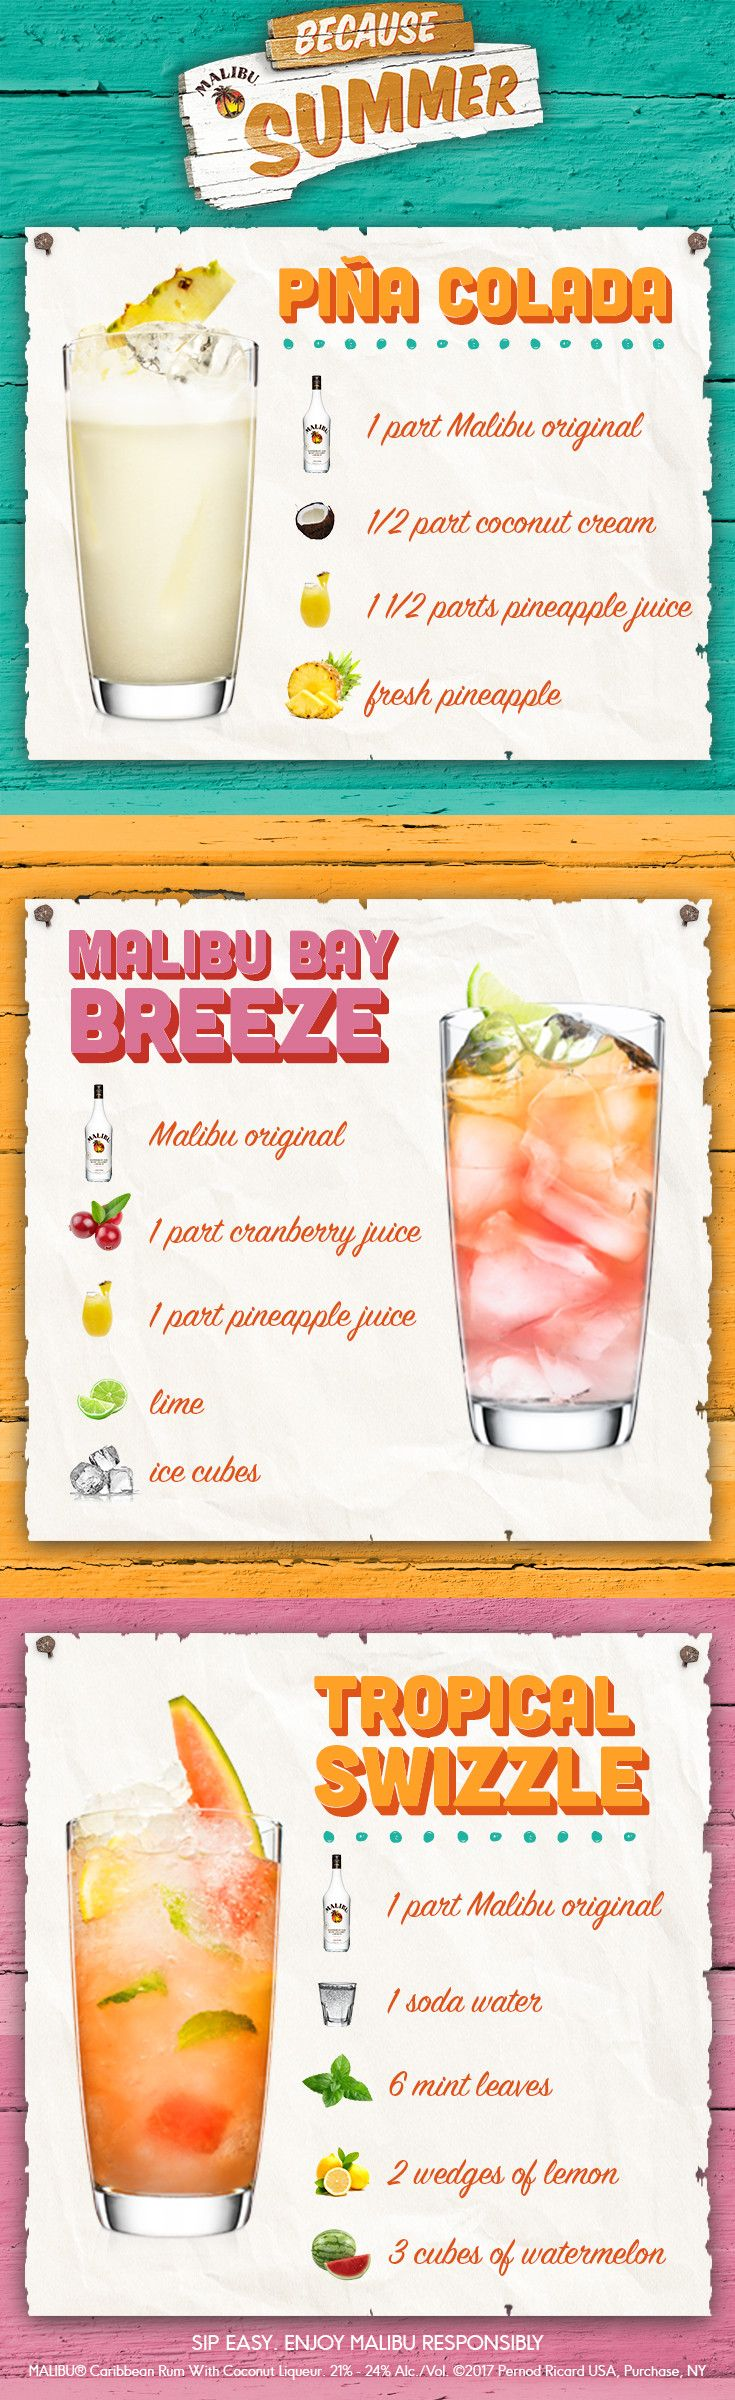 Looking for refreshing, easy to make rum recipes this Summer? Look no further, as these simple recipes will brighten up your summer. All you need is Malibu rum, fresh simple ingredients, and friends to bring the island to you. Easy to make, easy to enjoy! Click for the full recipes, and more! #summeralcoholicdrinks